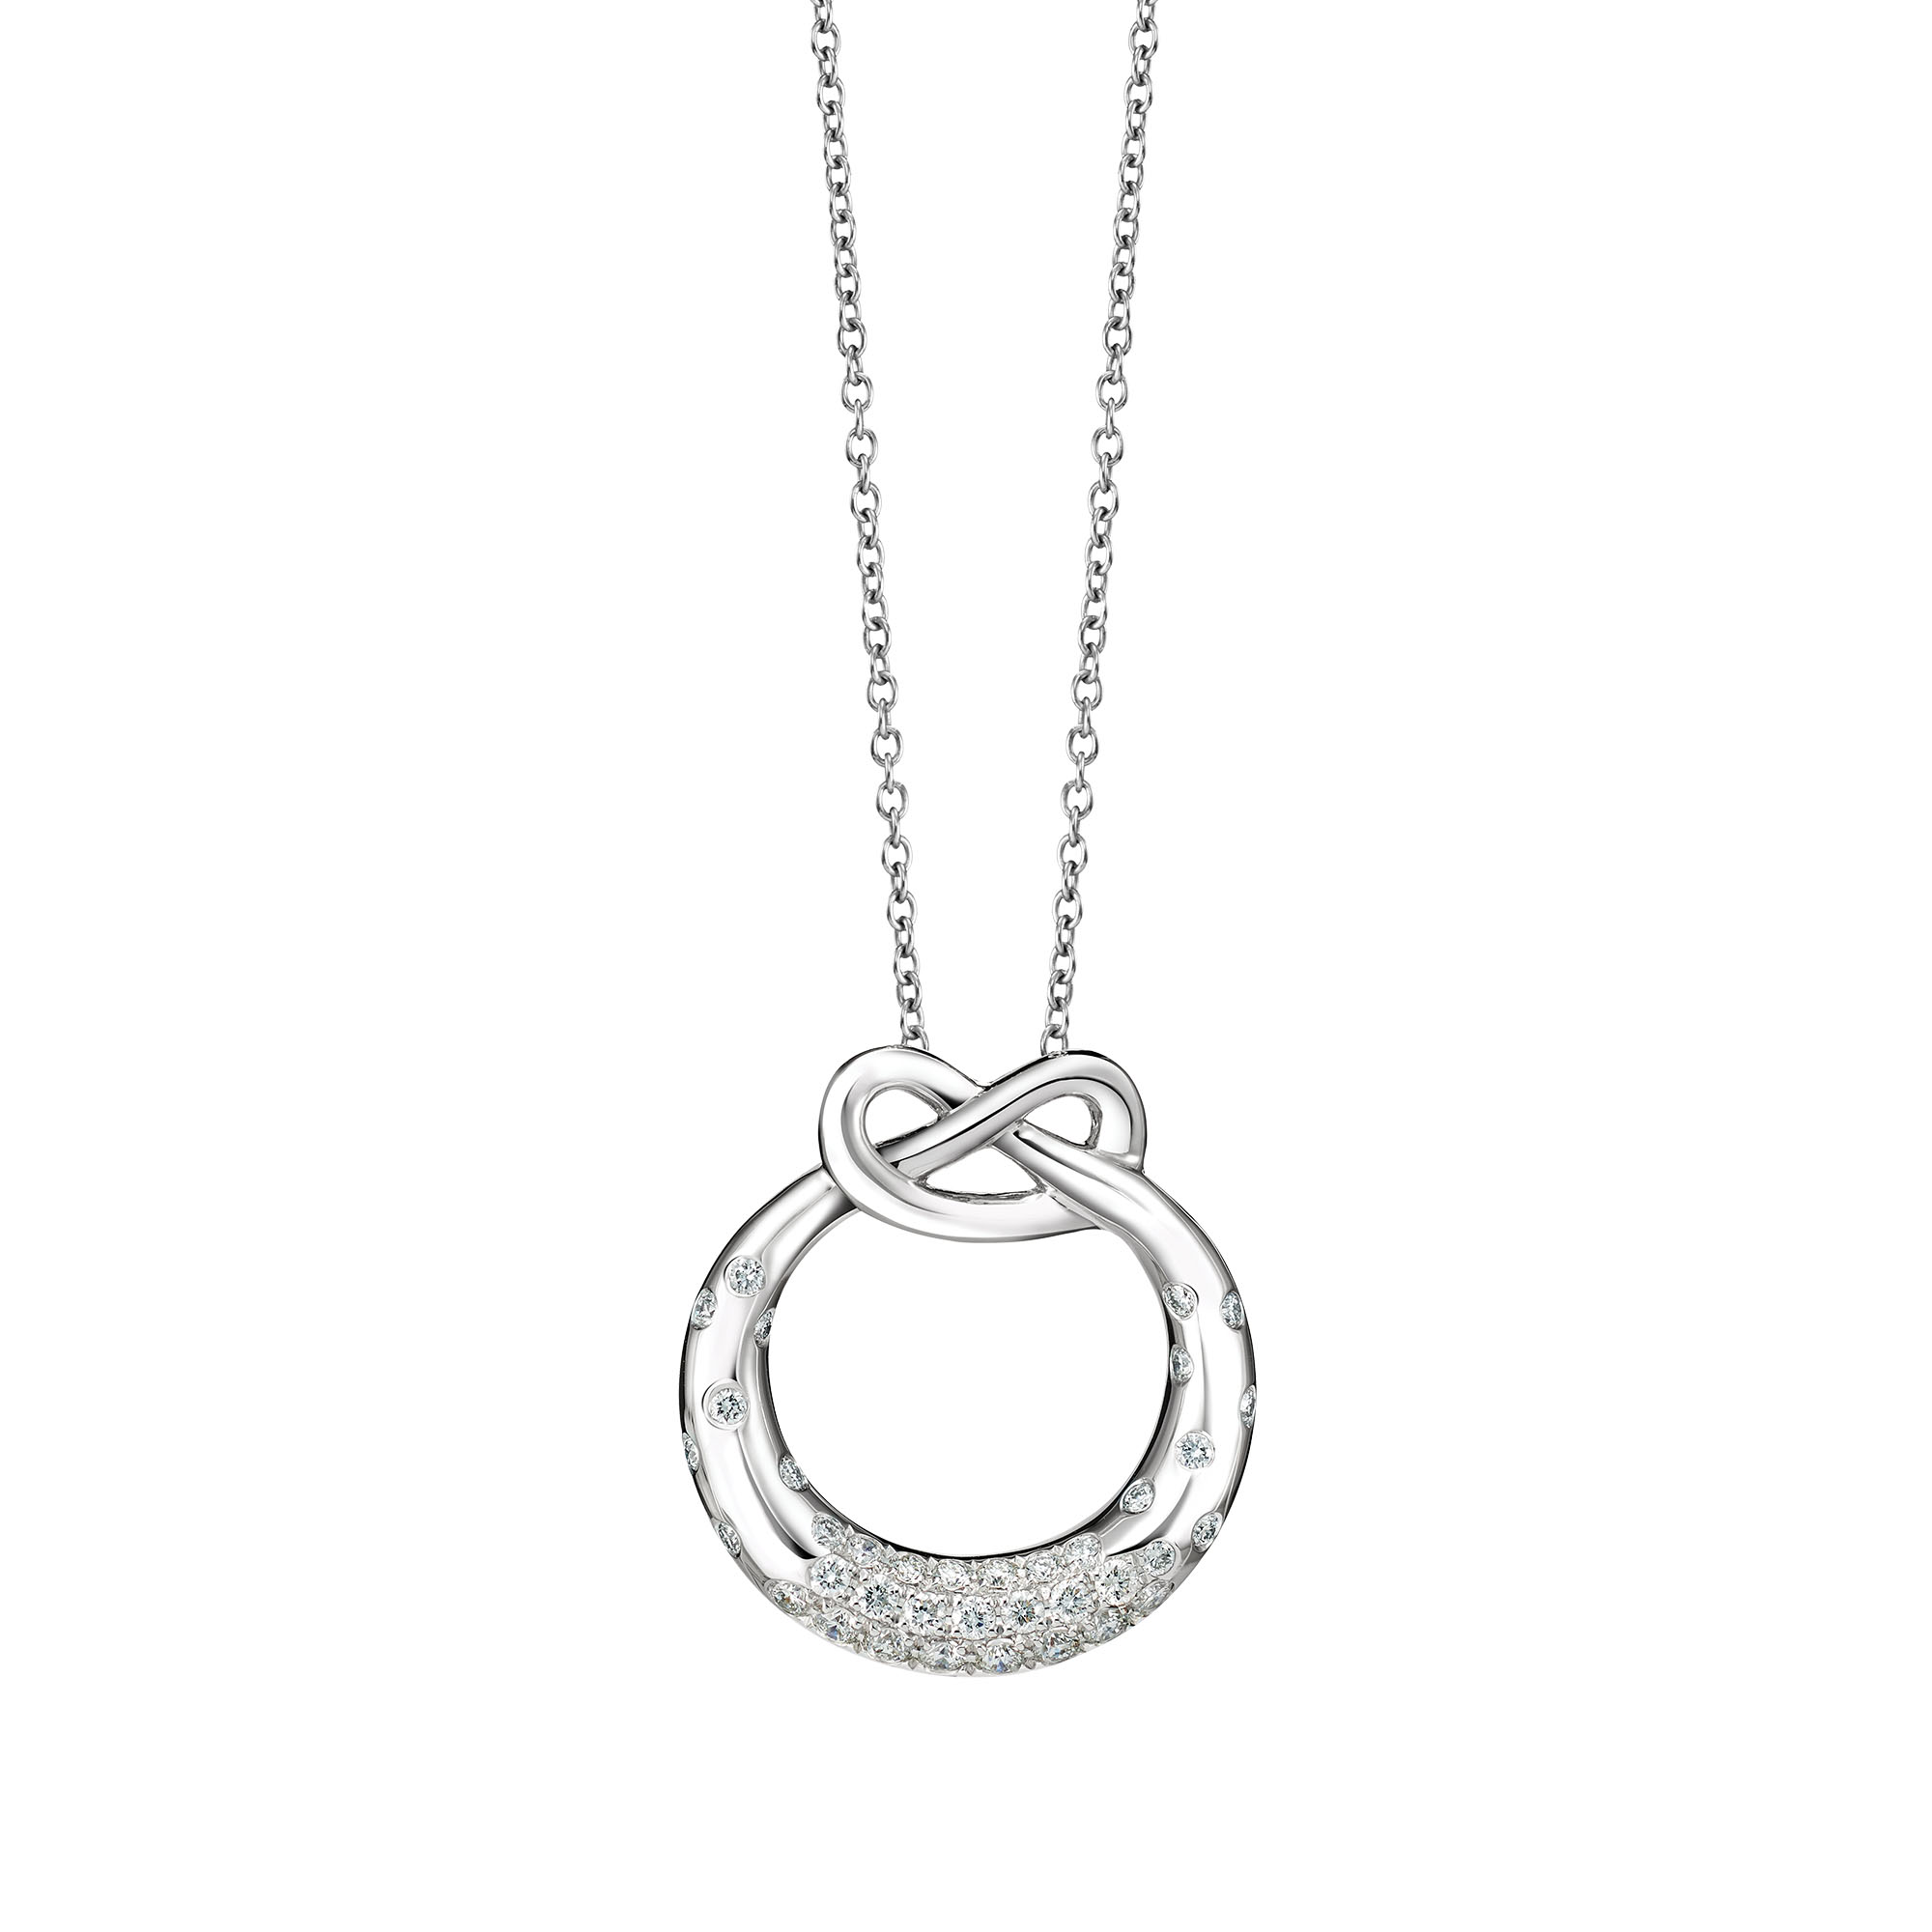 an which necklaces forever with infinity silver cn this is inspiration that clr the combined symbol sterling heart features piece a beautiful everlasting details behind products necklace cubic love chain last eternal